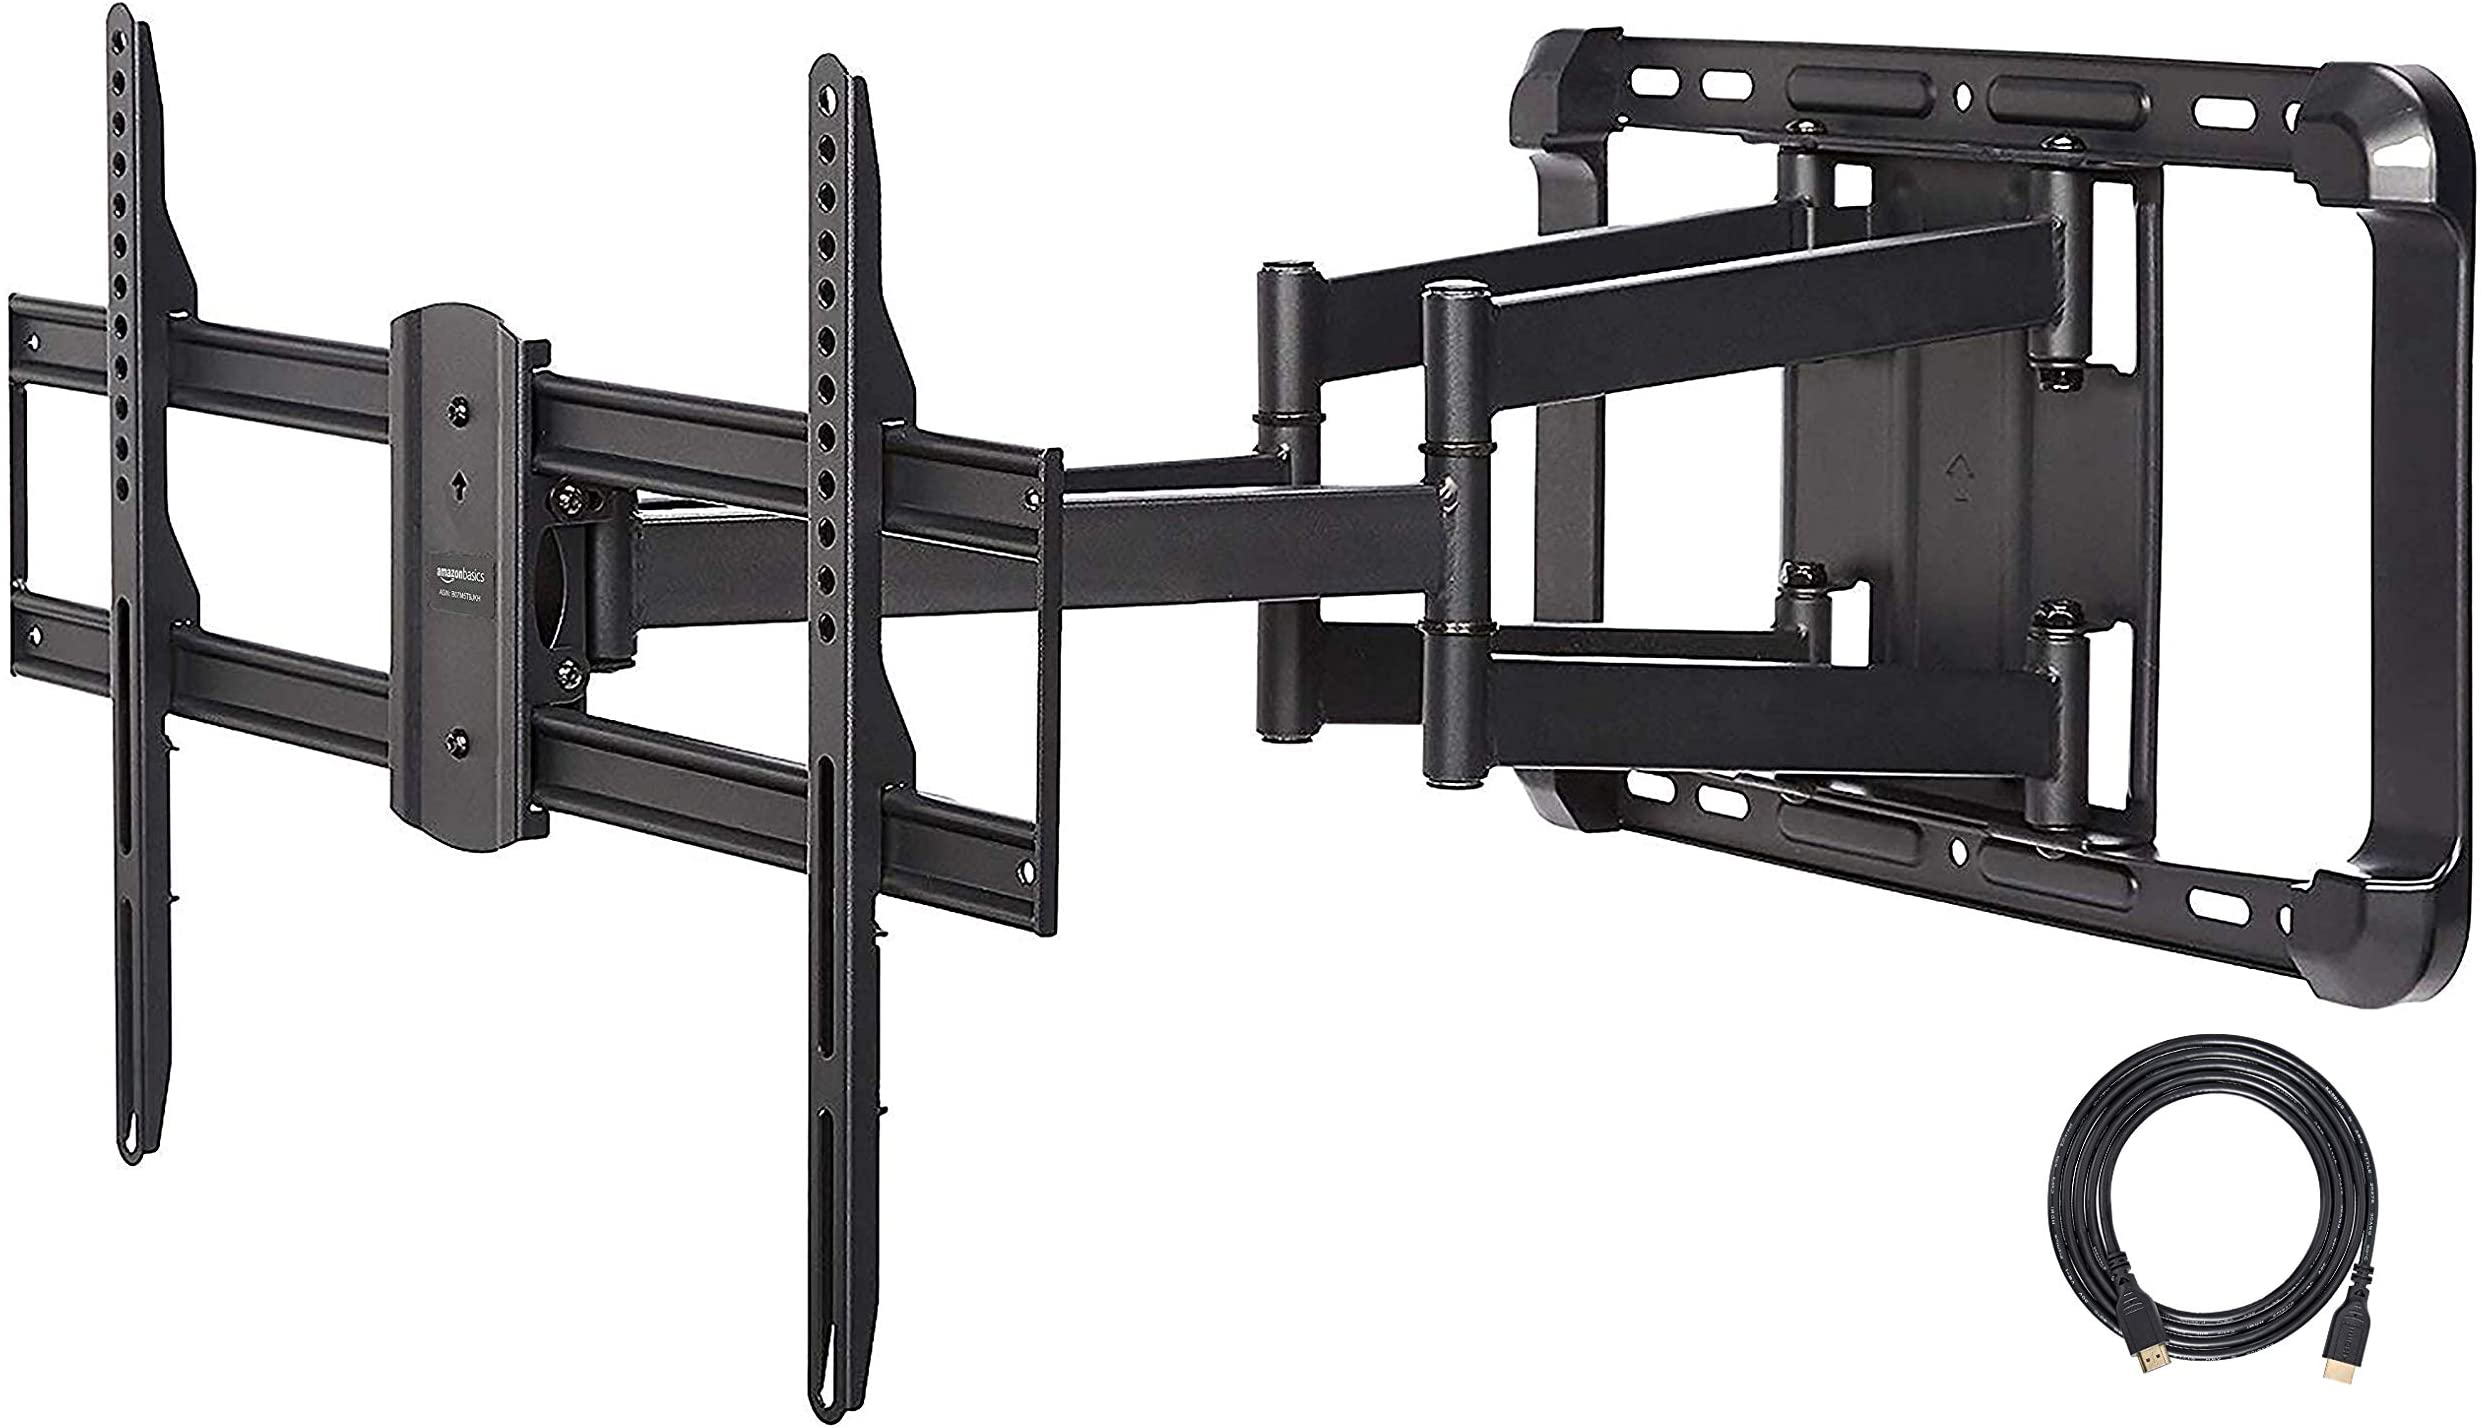 Amazon Basics Heavy-Duty Extension Dual Arm, Full Motion Articulating TV Mount for 37-80 inch TVs up to 132 lbs, fits LED LCD OLED Flat Curved Screens